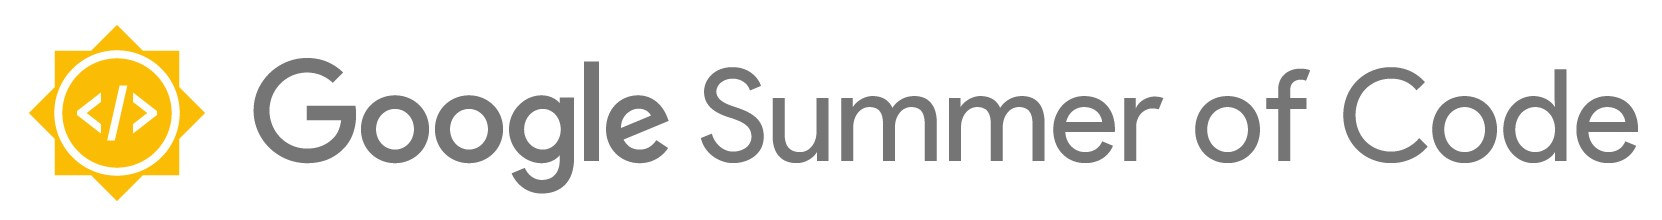 Google Summer of Code Header